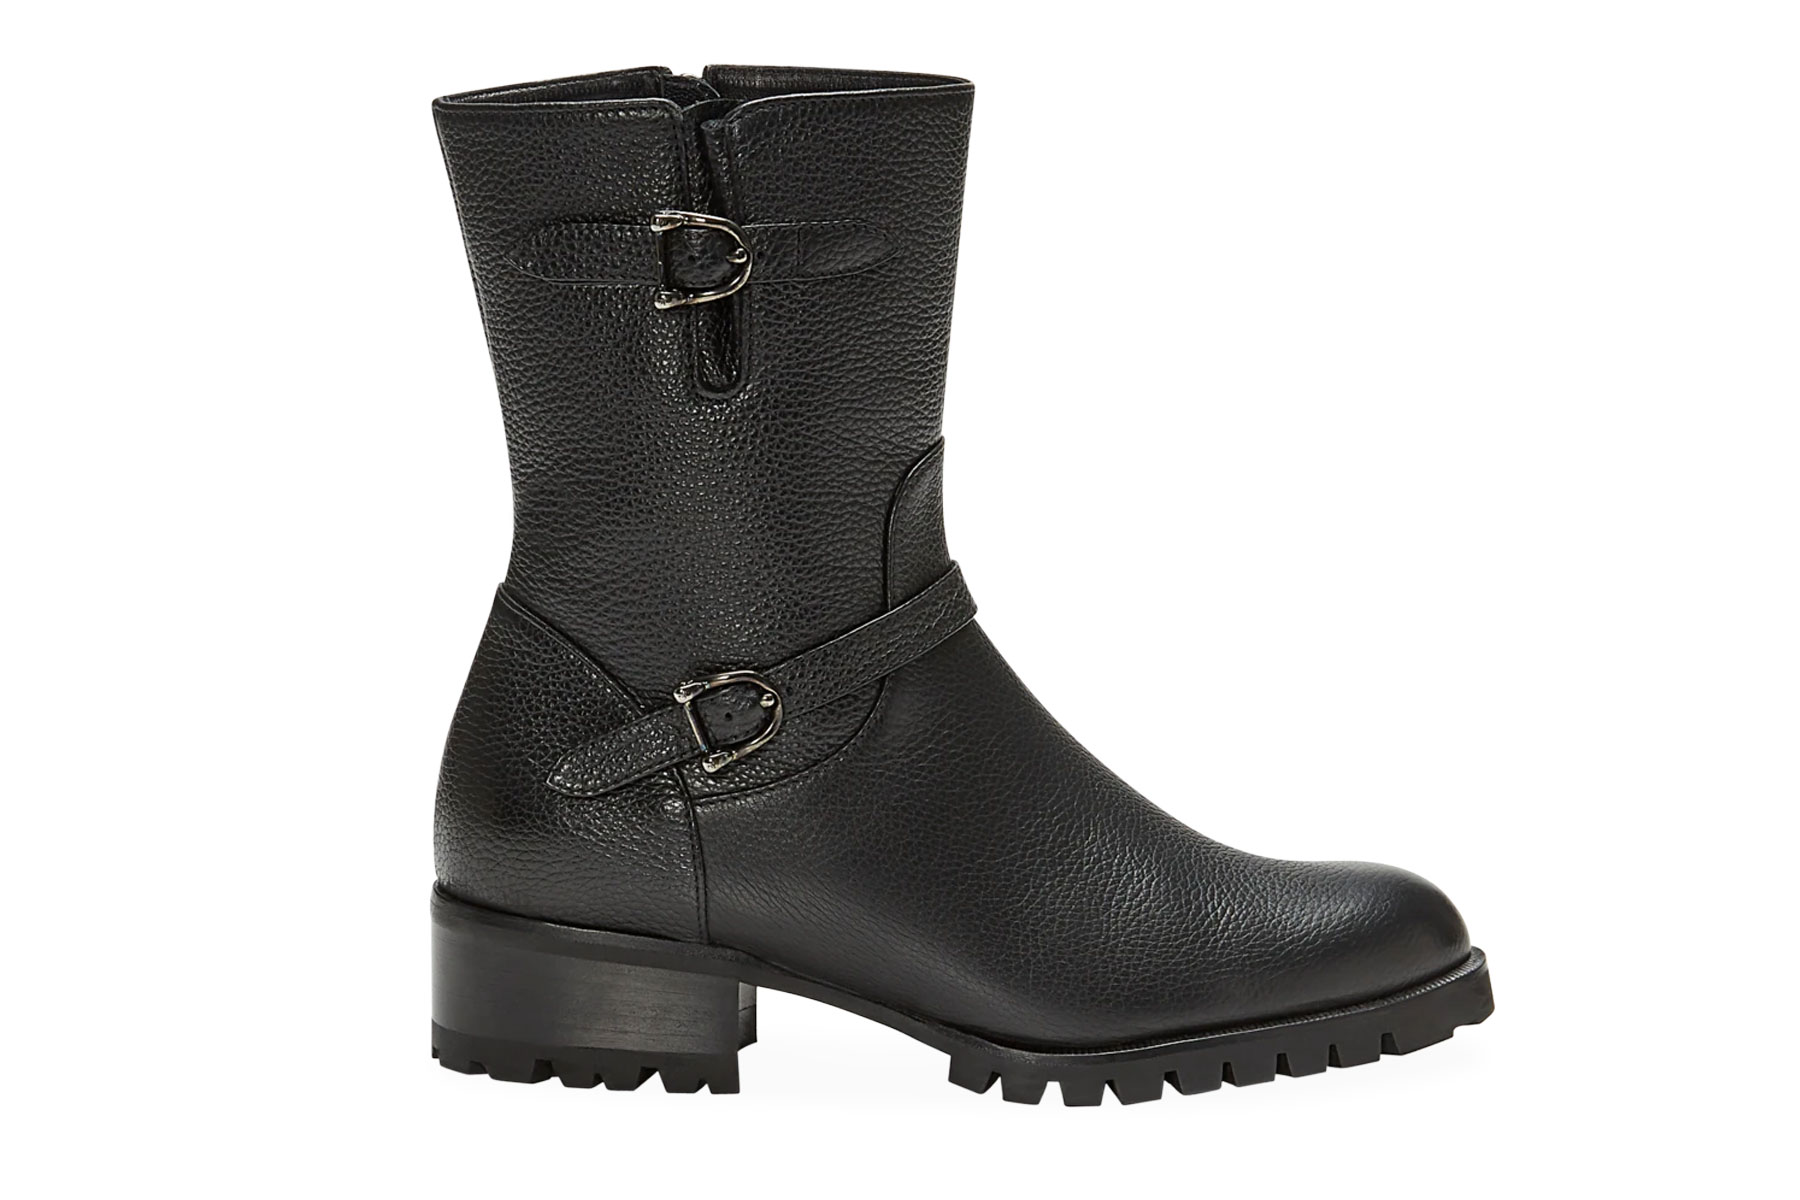 Black leather motorcycle style boot